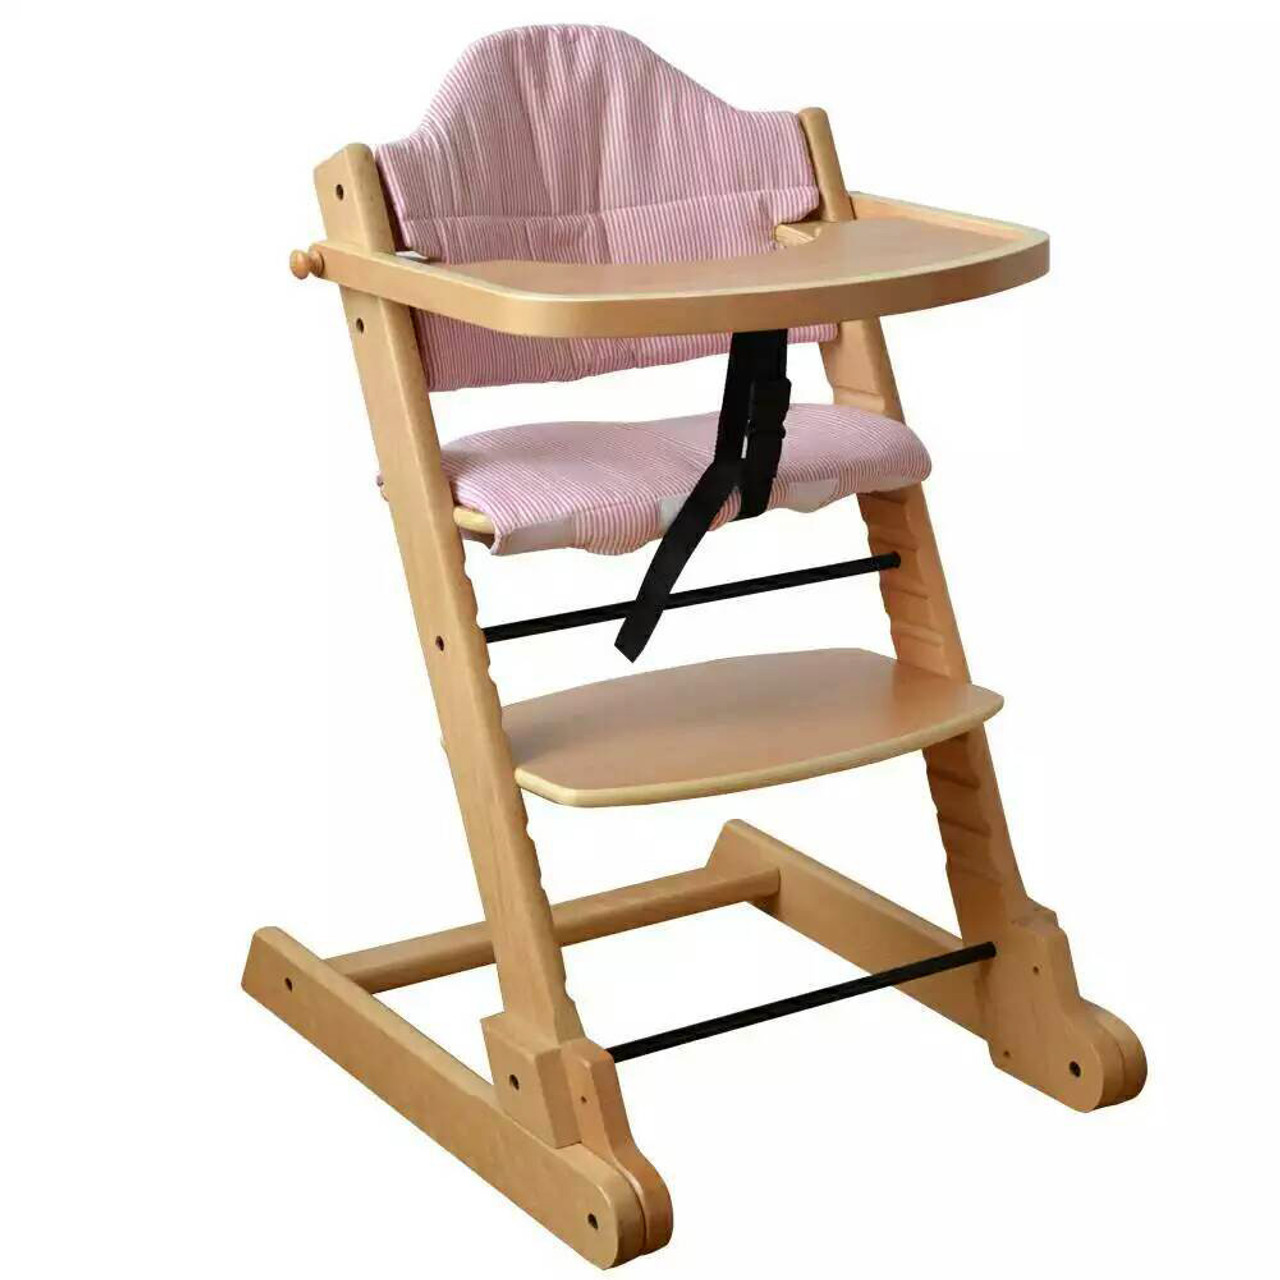 Strong Solid Natural Wooden Foldable Baby High Chair With Tray Pad And 5 Points Safety Straps